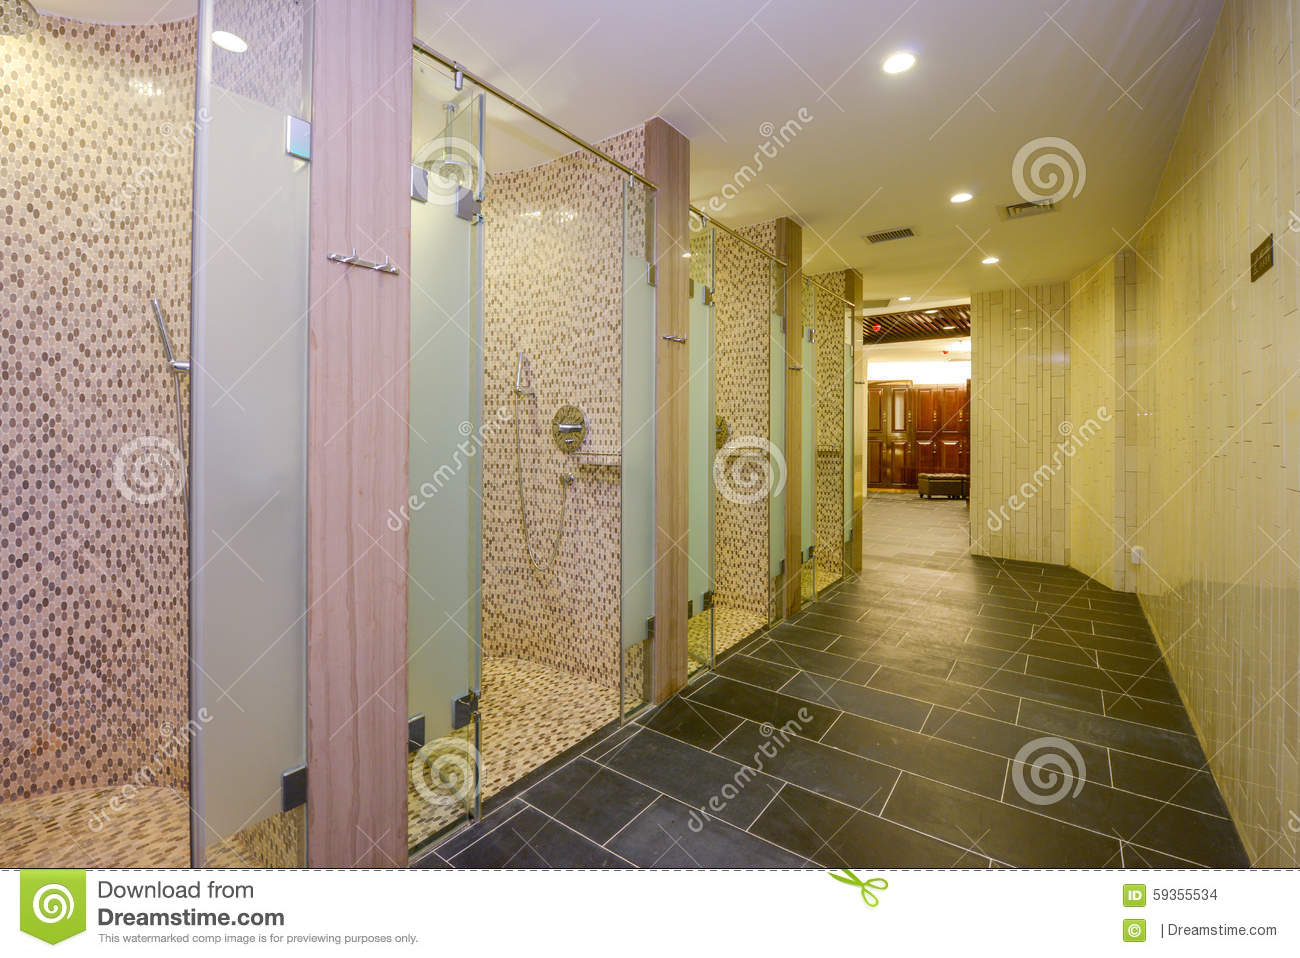 Gym bathroom stock photo. image of architecture container 59355534